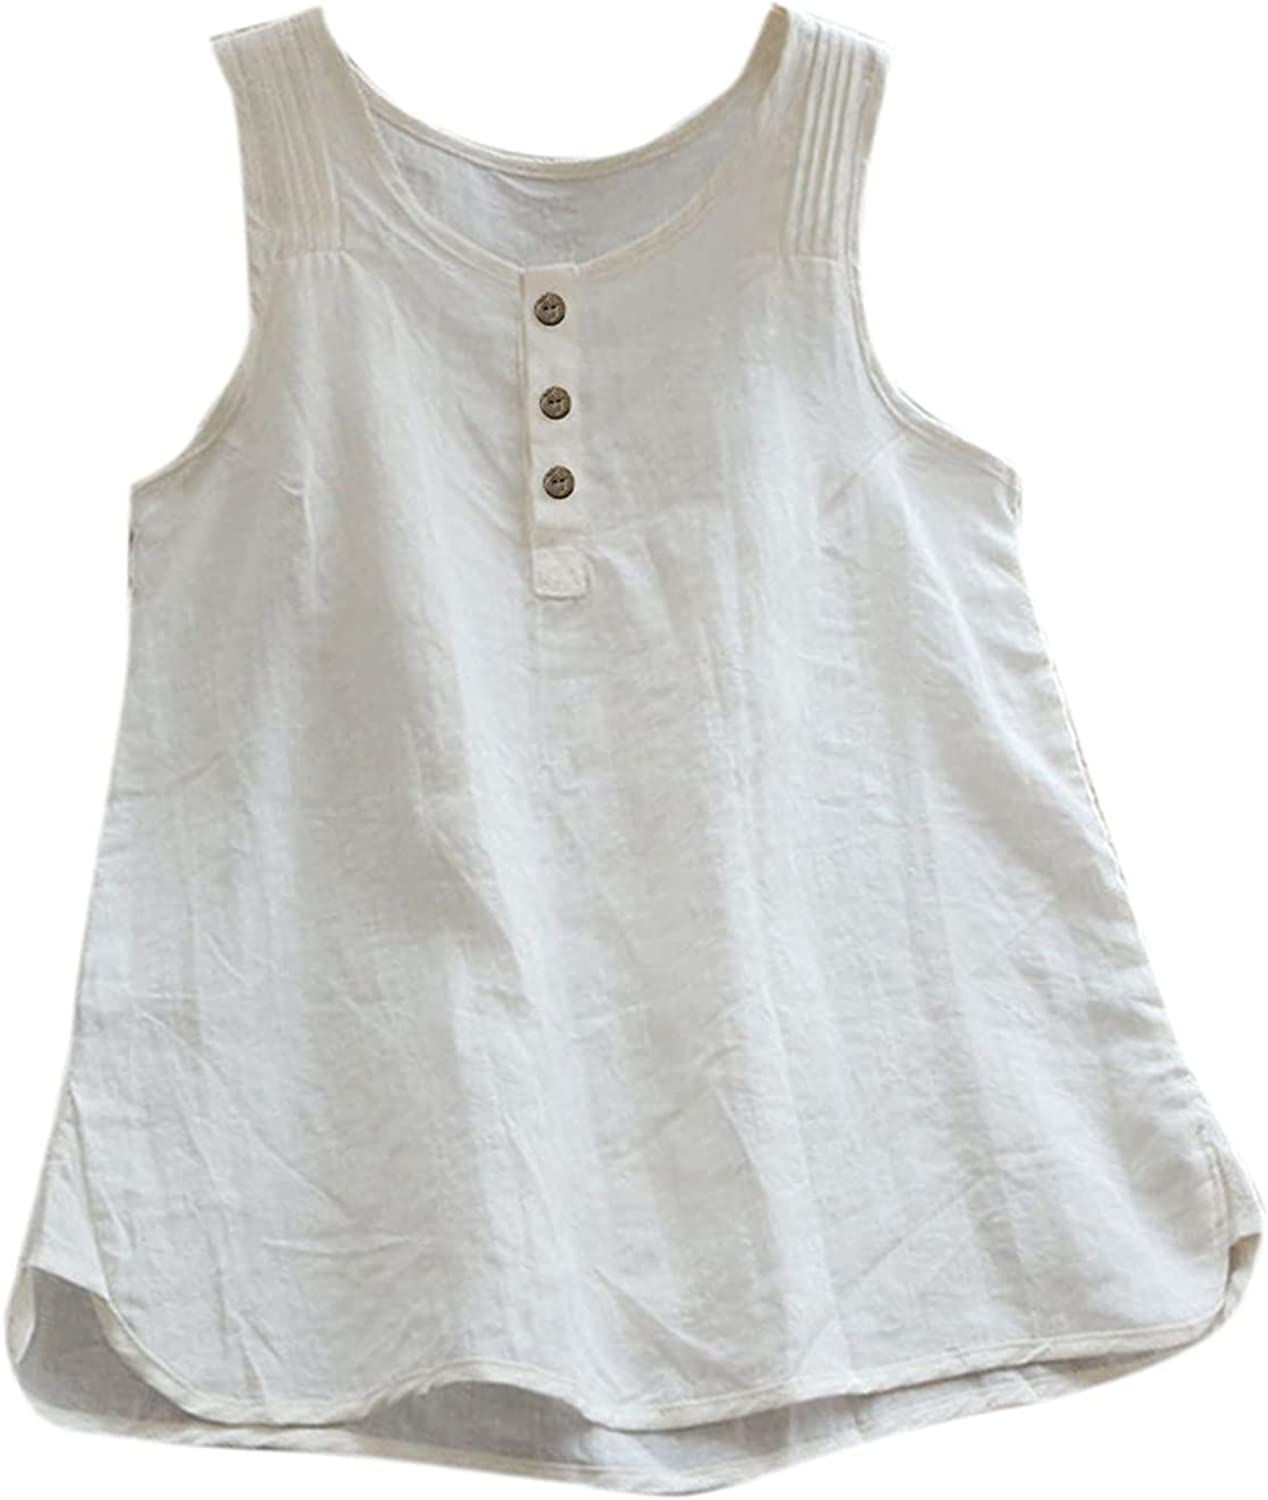 Sinzelimin Fashion Vest for Women Casual Loose Solid Color Cotton Linen O-Neck Sexy Sleeveless T-Shirt Blouse Tank Tops